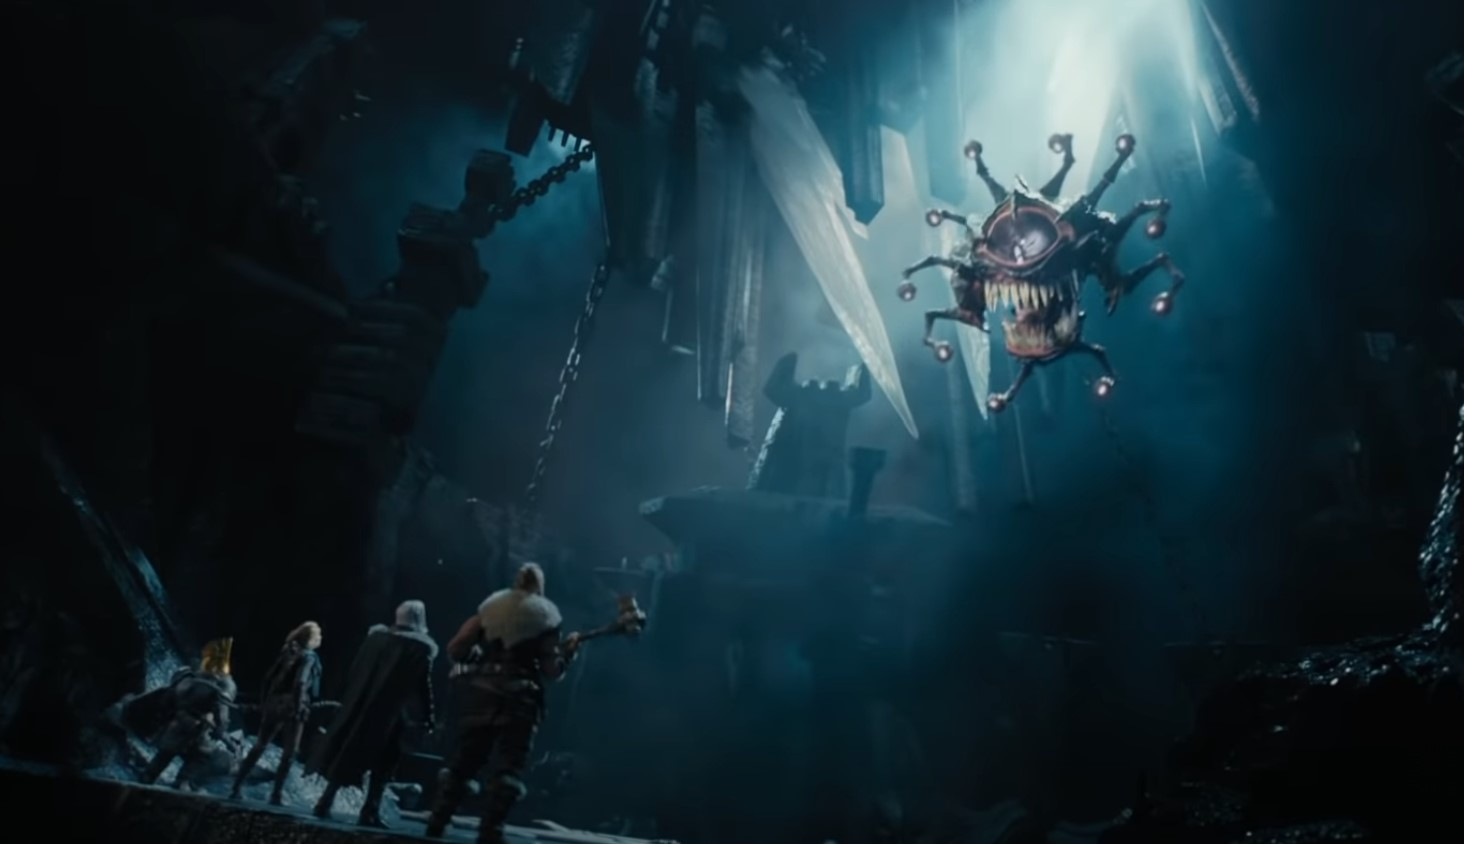 Dungeons & Dragons: Dark Alliance Release Date, Trailer, Supported Platforms and Gameplay